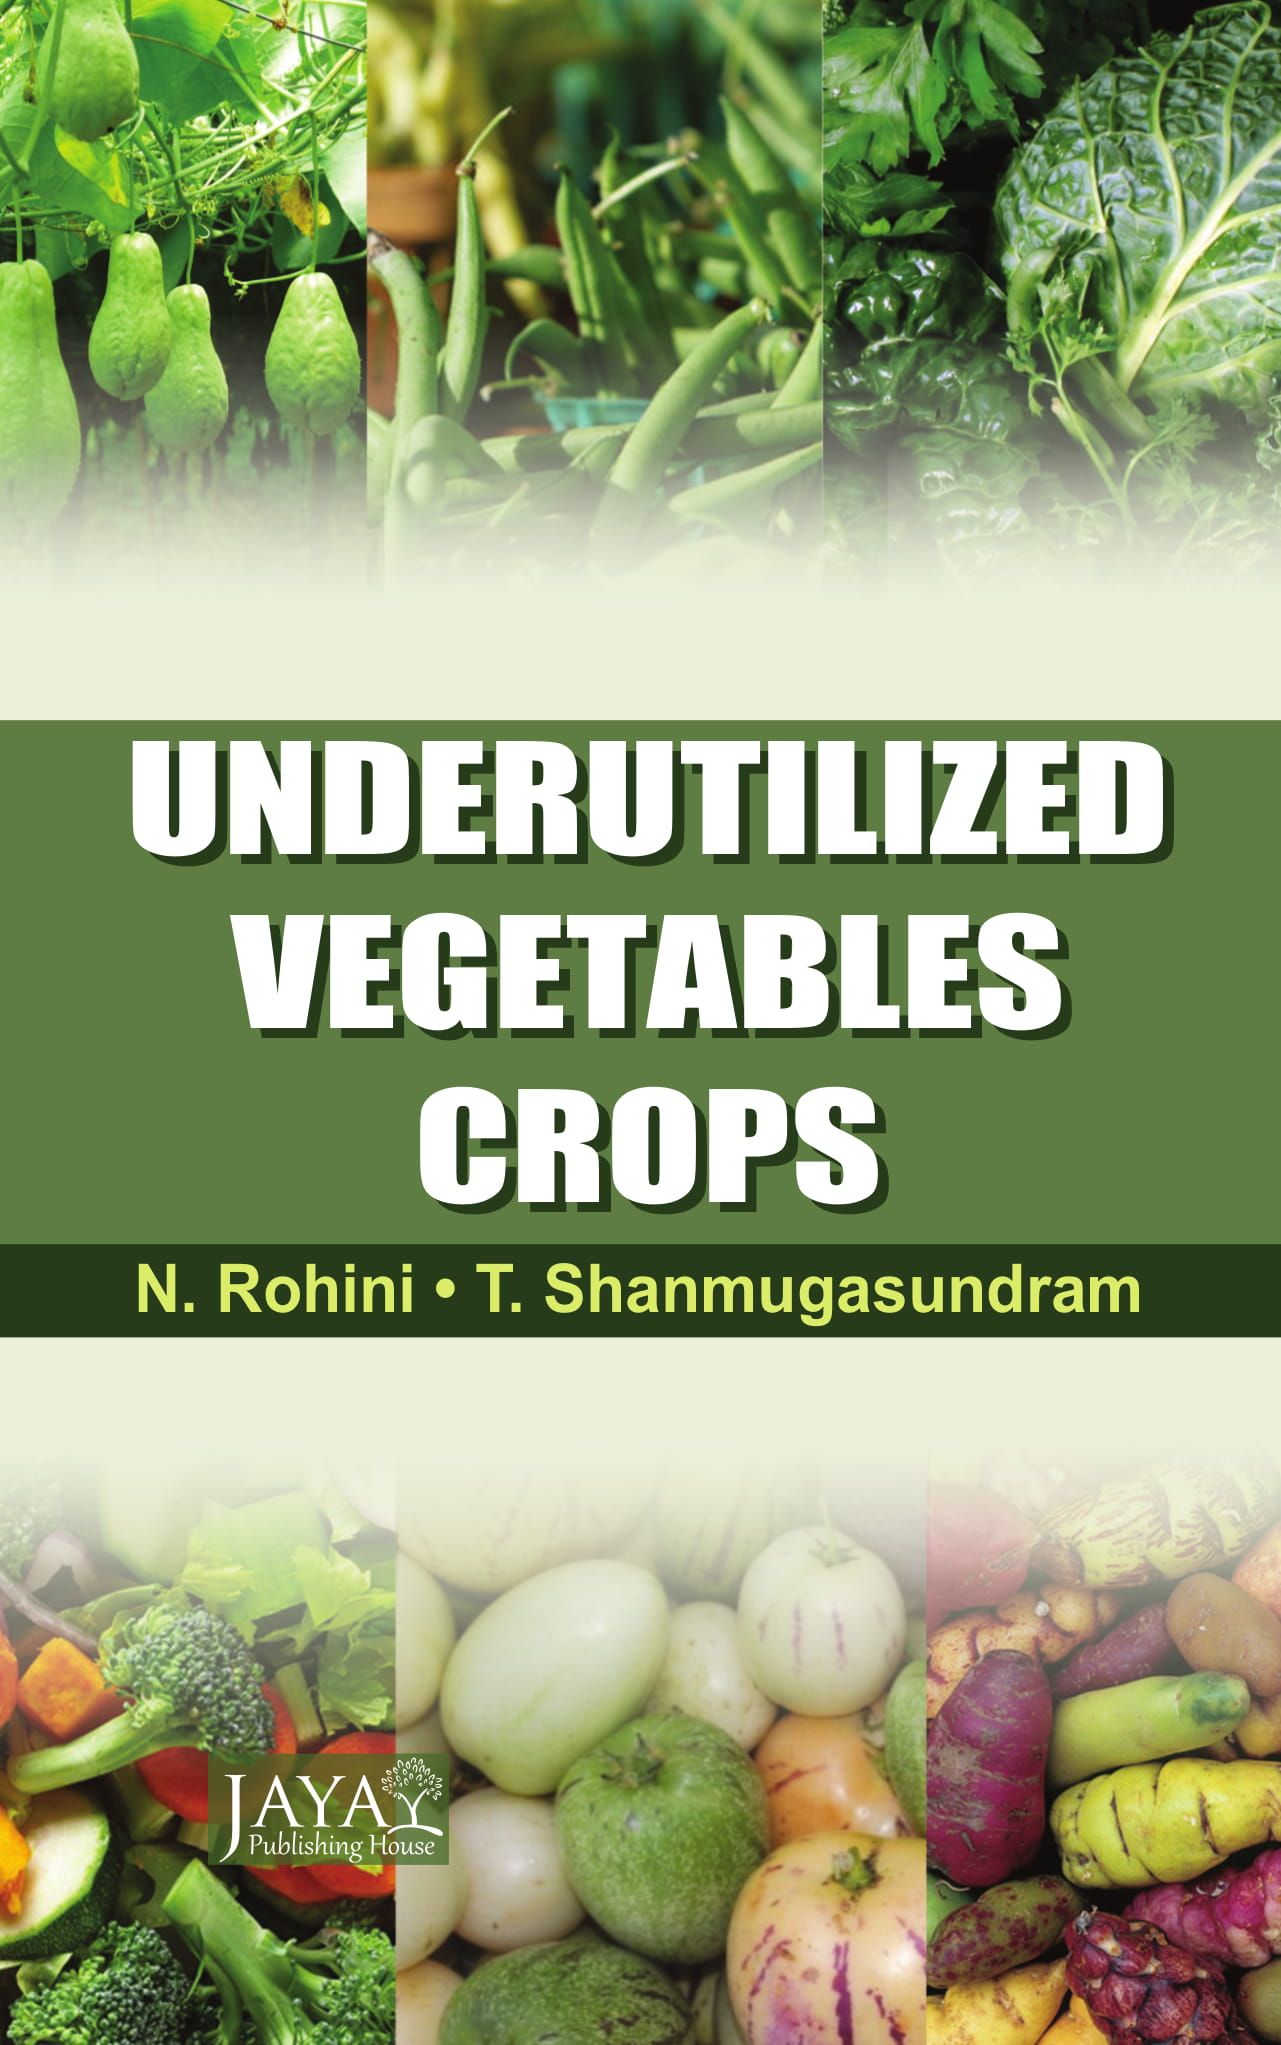 Underutilized Vegetable Crops